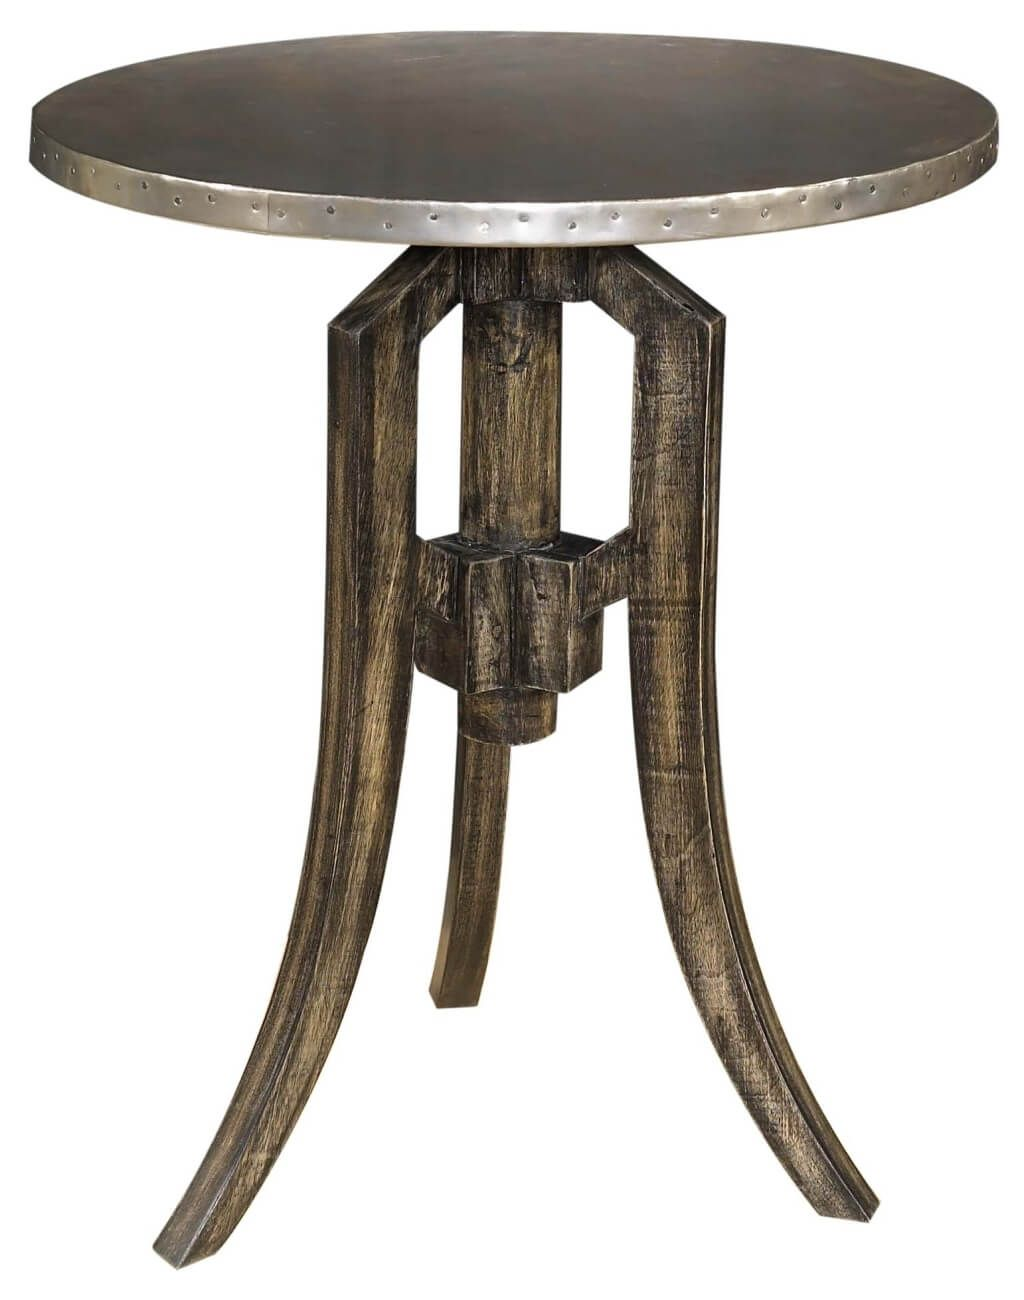 astonishing small accent tables for living room table gold furniture glass modern target kijiji decorative white tall antique round outdoor full size bronze side red lamp metal